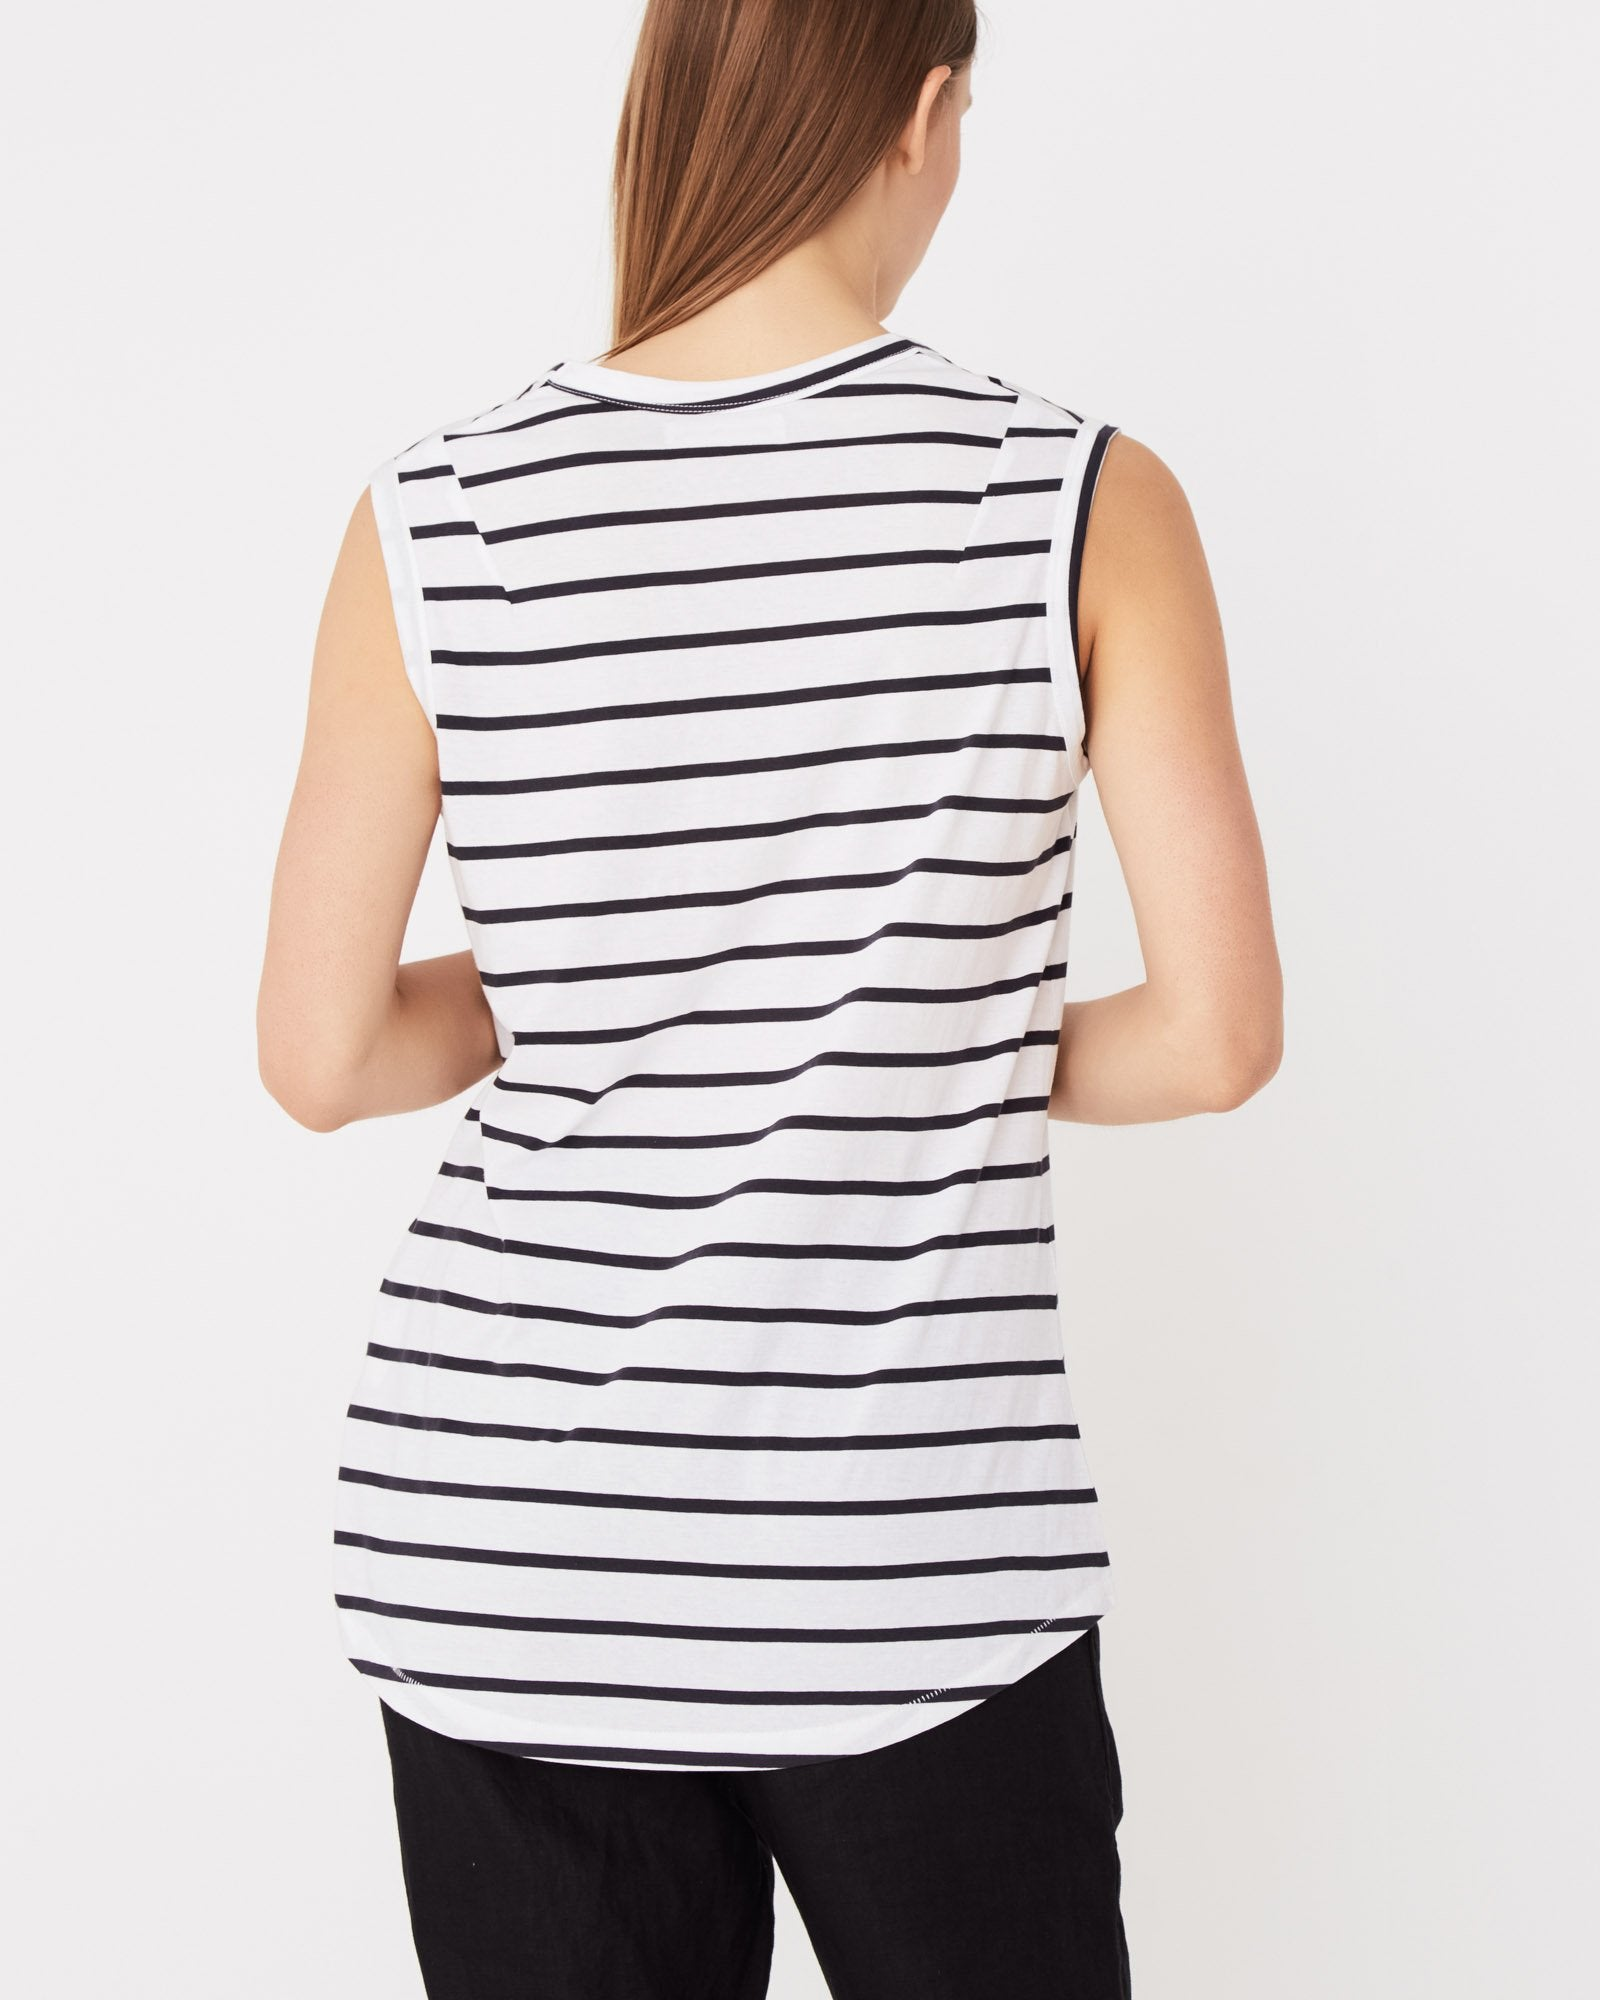 Scoop Tank / Worn Navy Stripe